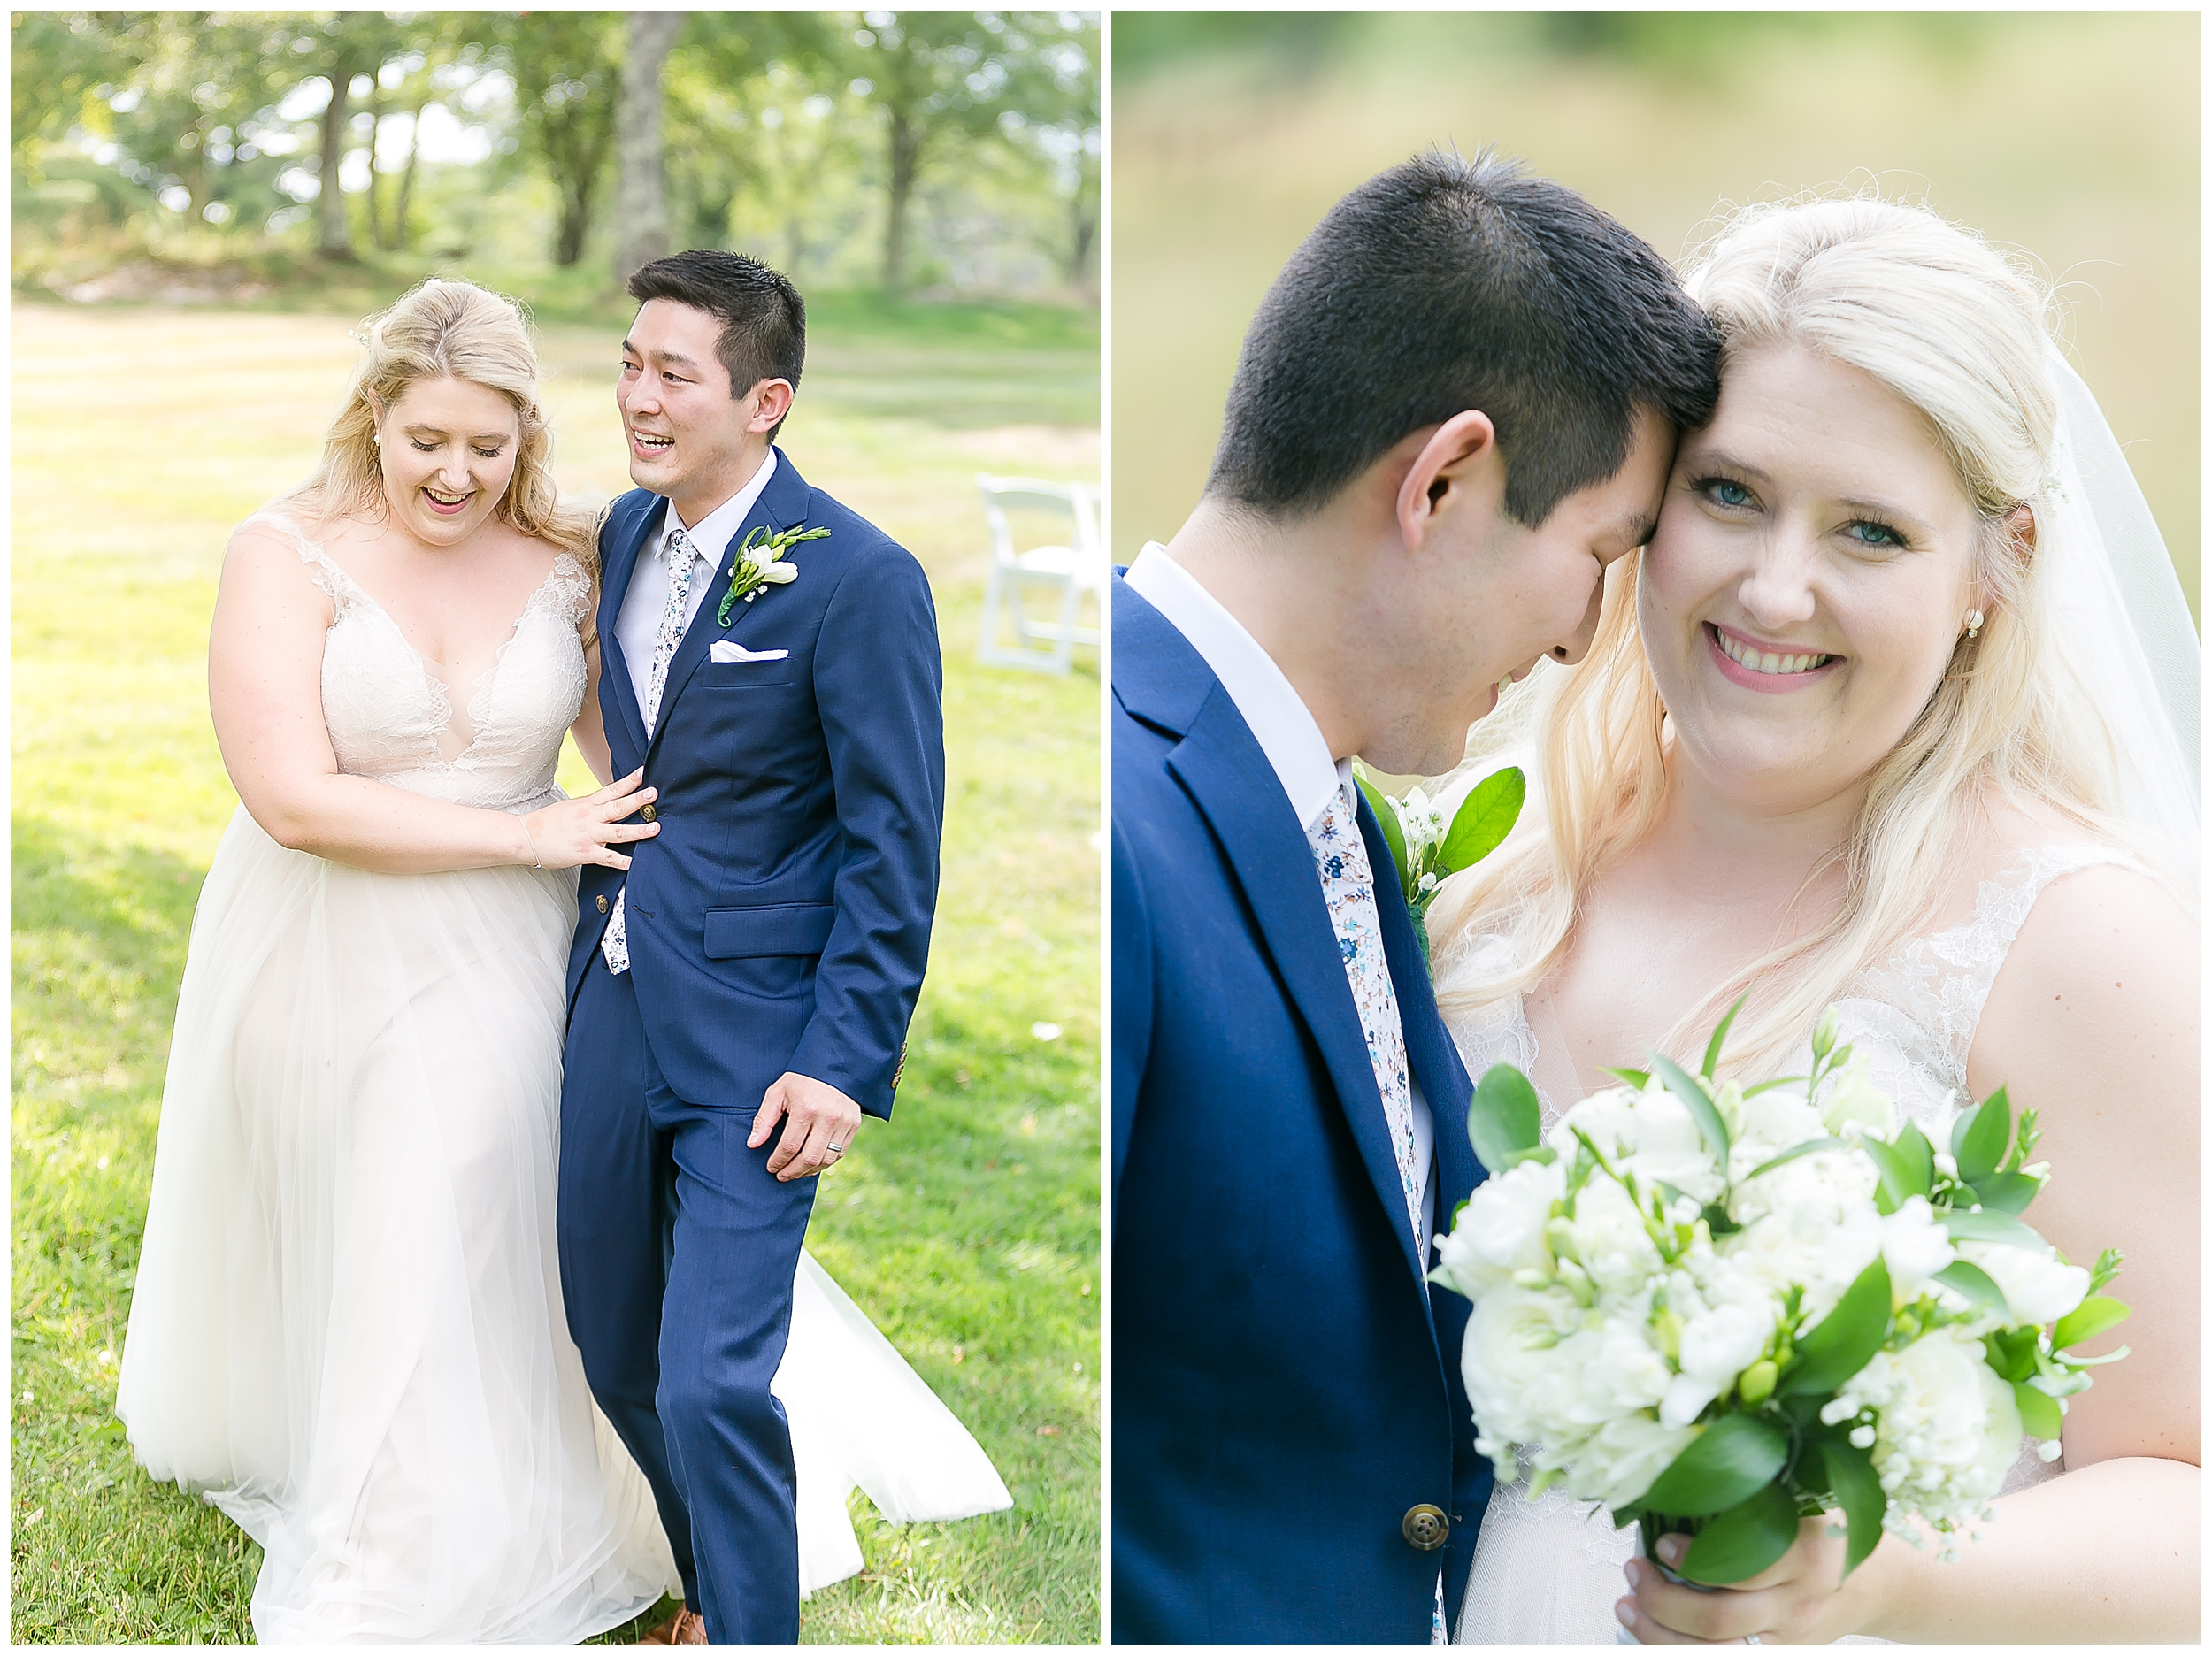 Summer Wedding at Gedney Farm in New Marlborough, MA, Sophia House and Kellen Muldoon are married on July 6th, 2019.